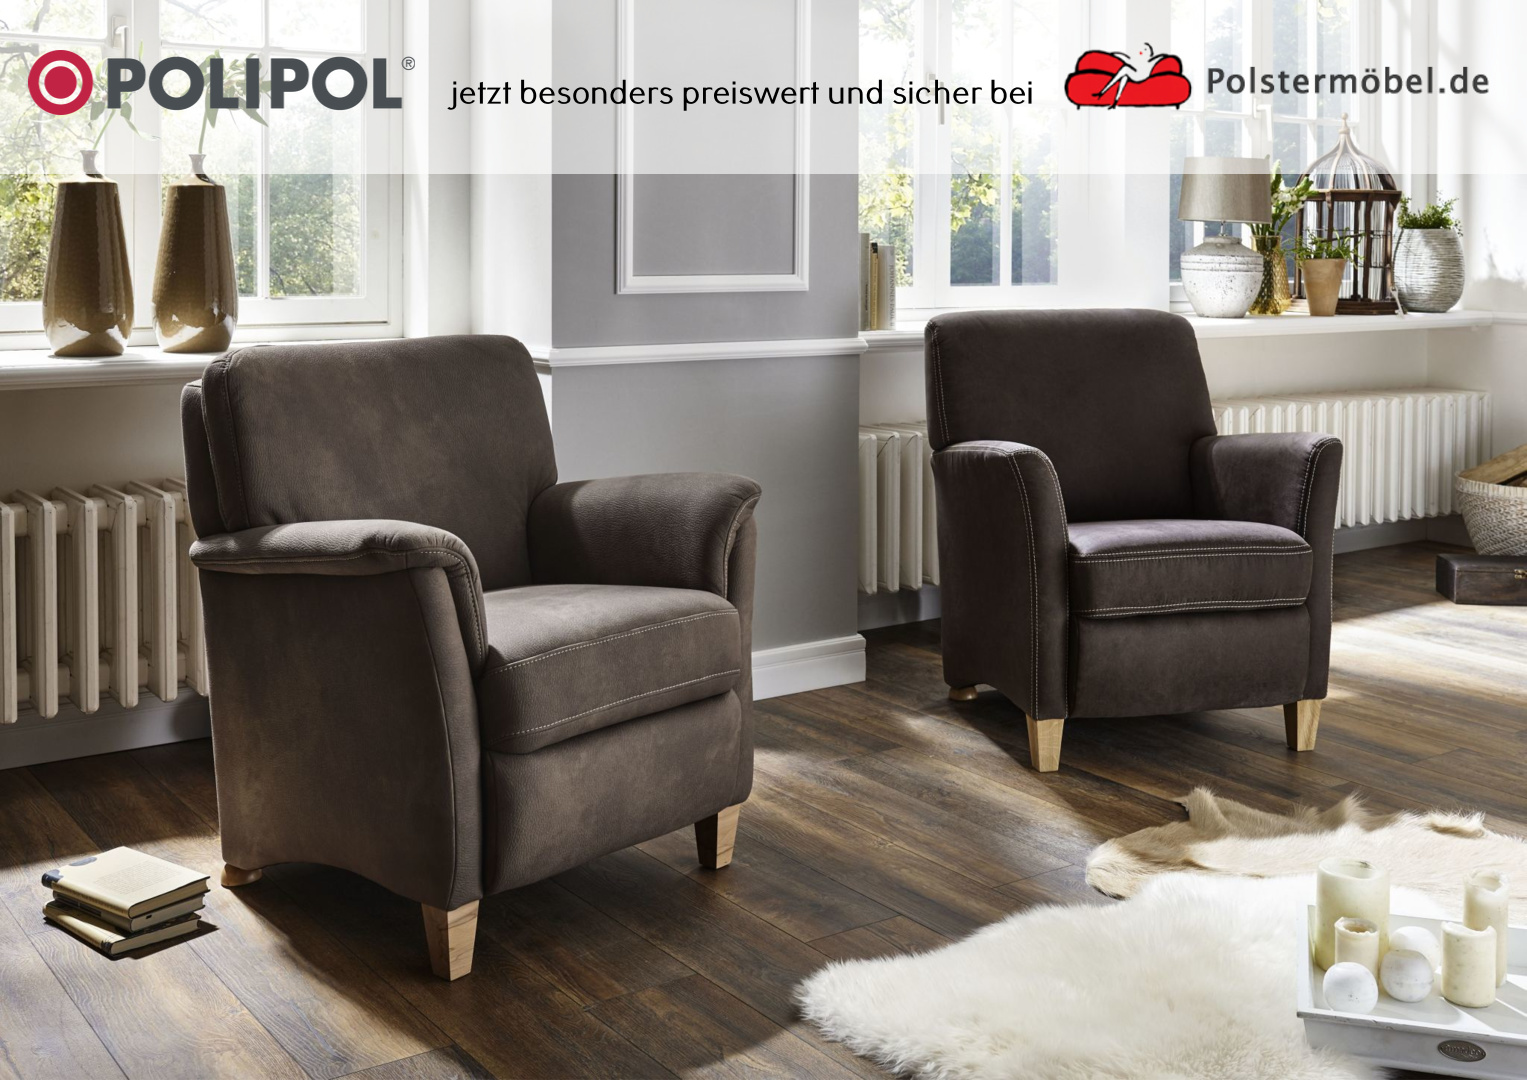 polipol comfortsessel s polsterm. Black Bedroom Furniture Sets. Home Design Ideas